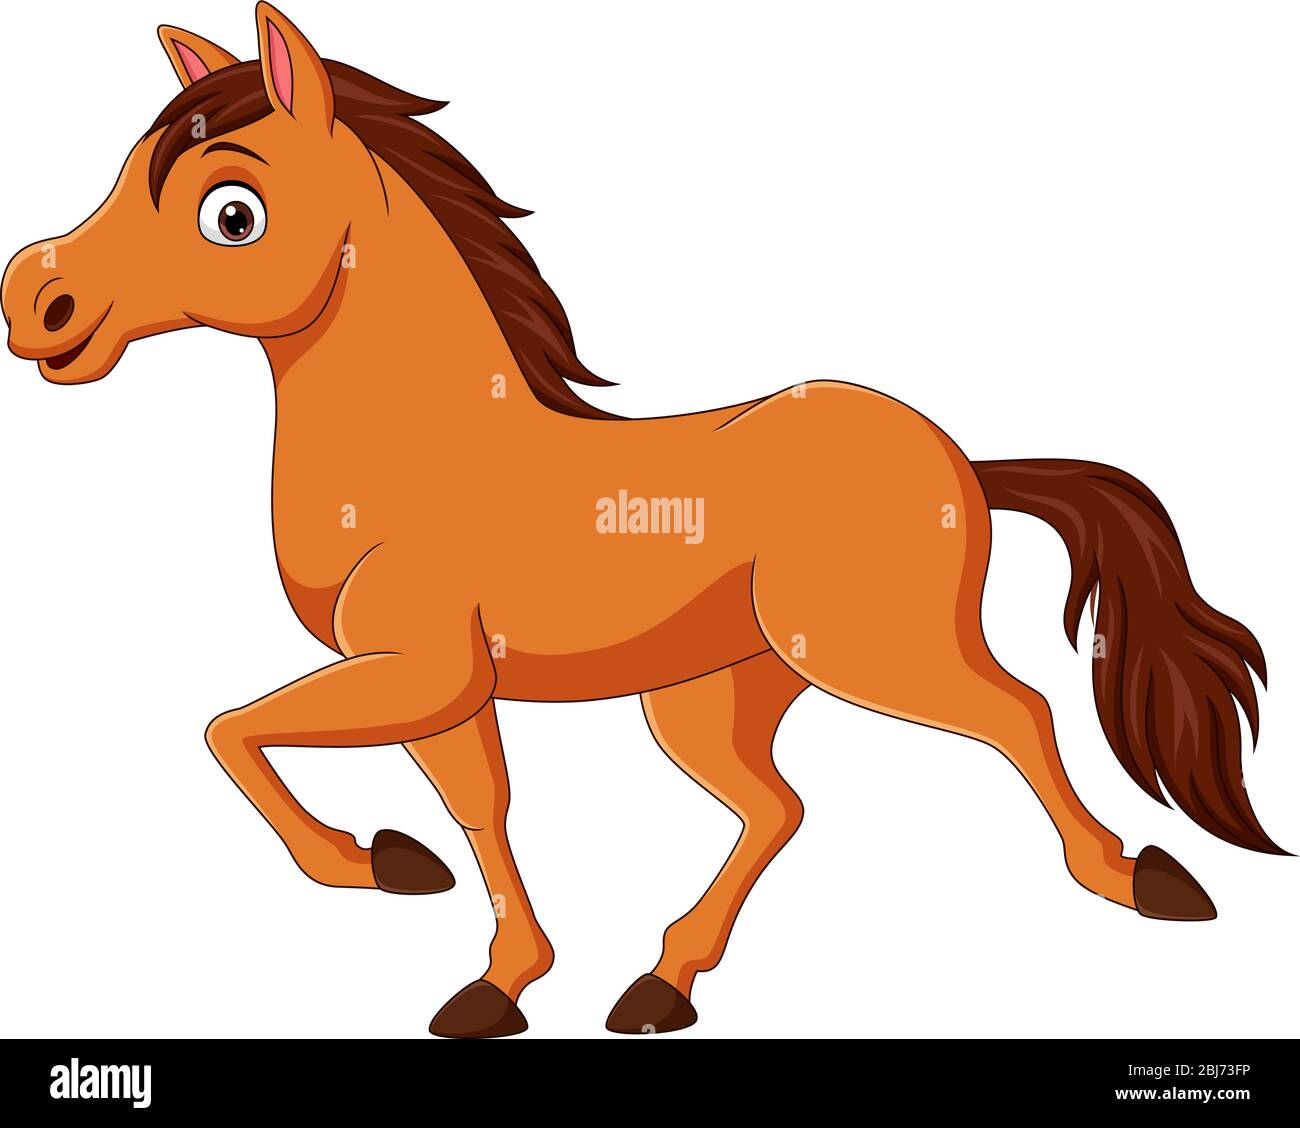 Cartoon Brown Horse Running On White Background Stock Vector Image Art Alamy